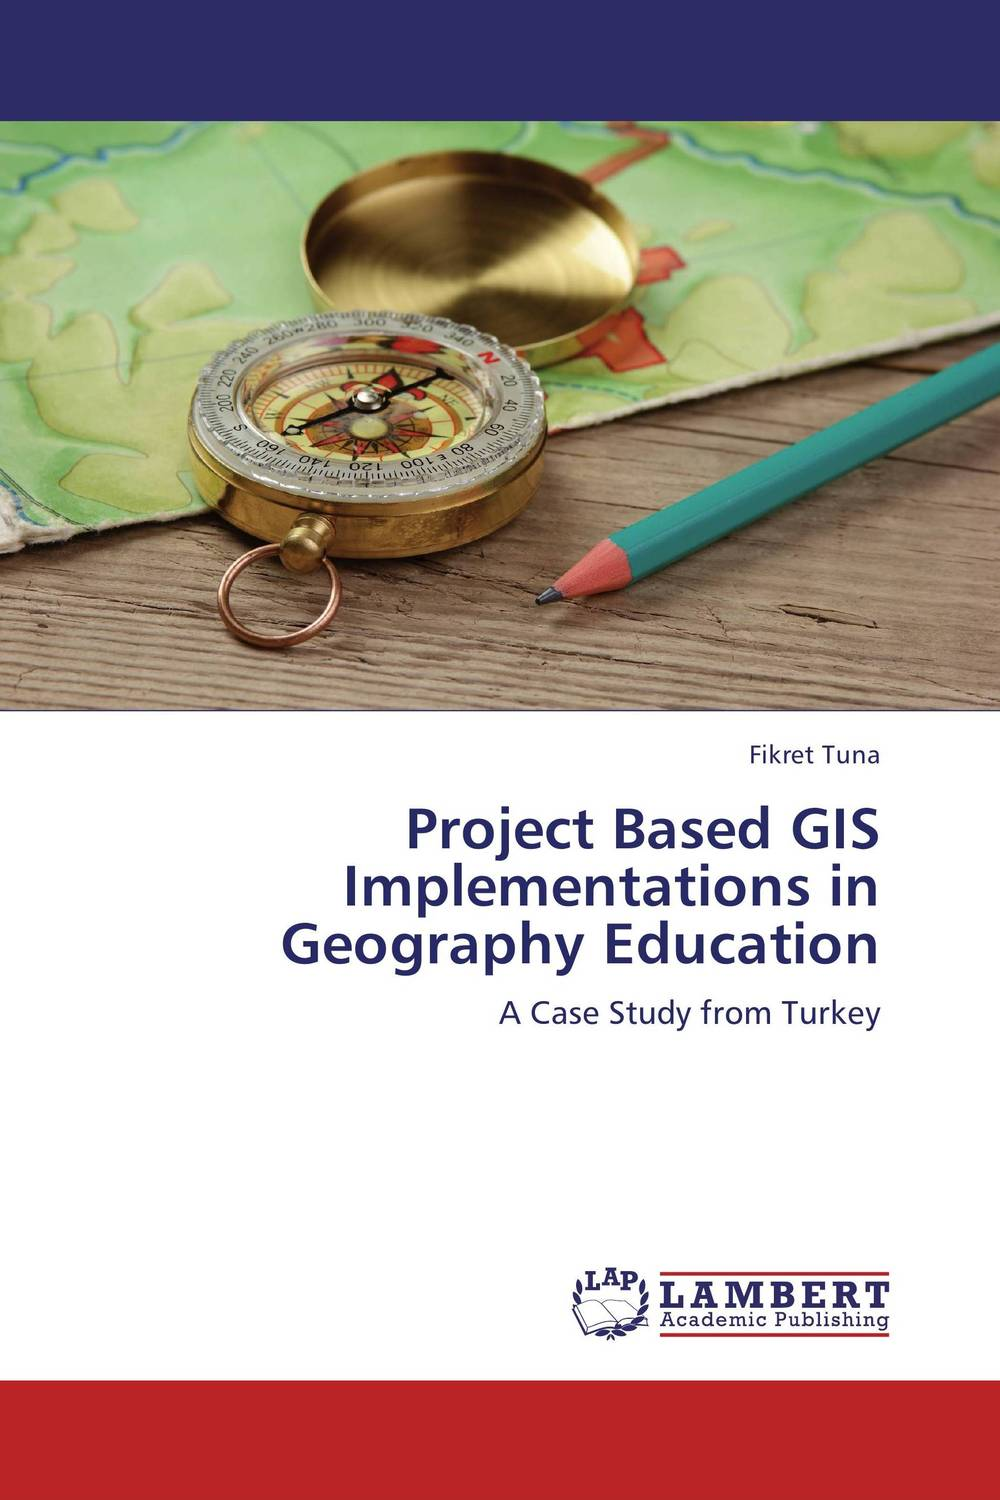 Project Based GIS Implementations in Geography Education